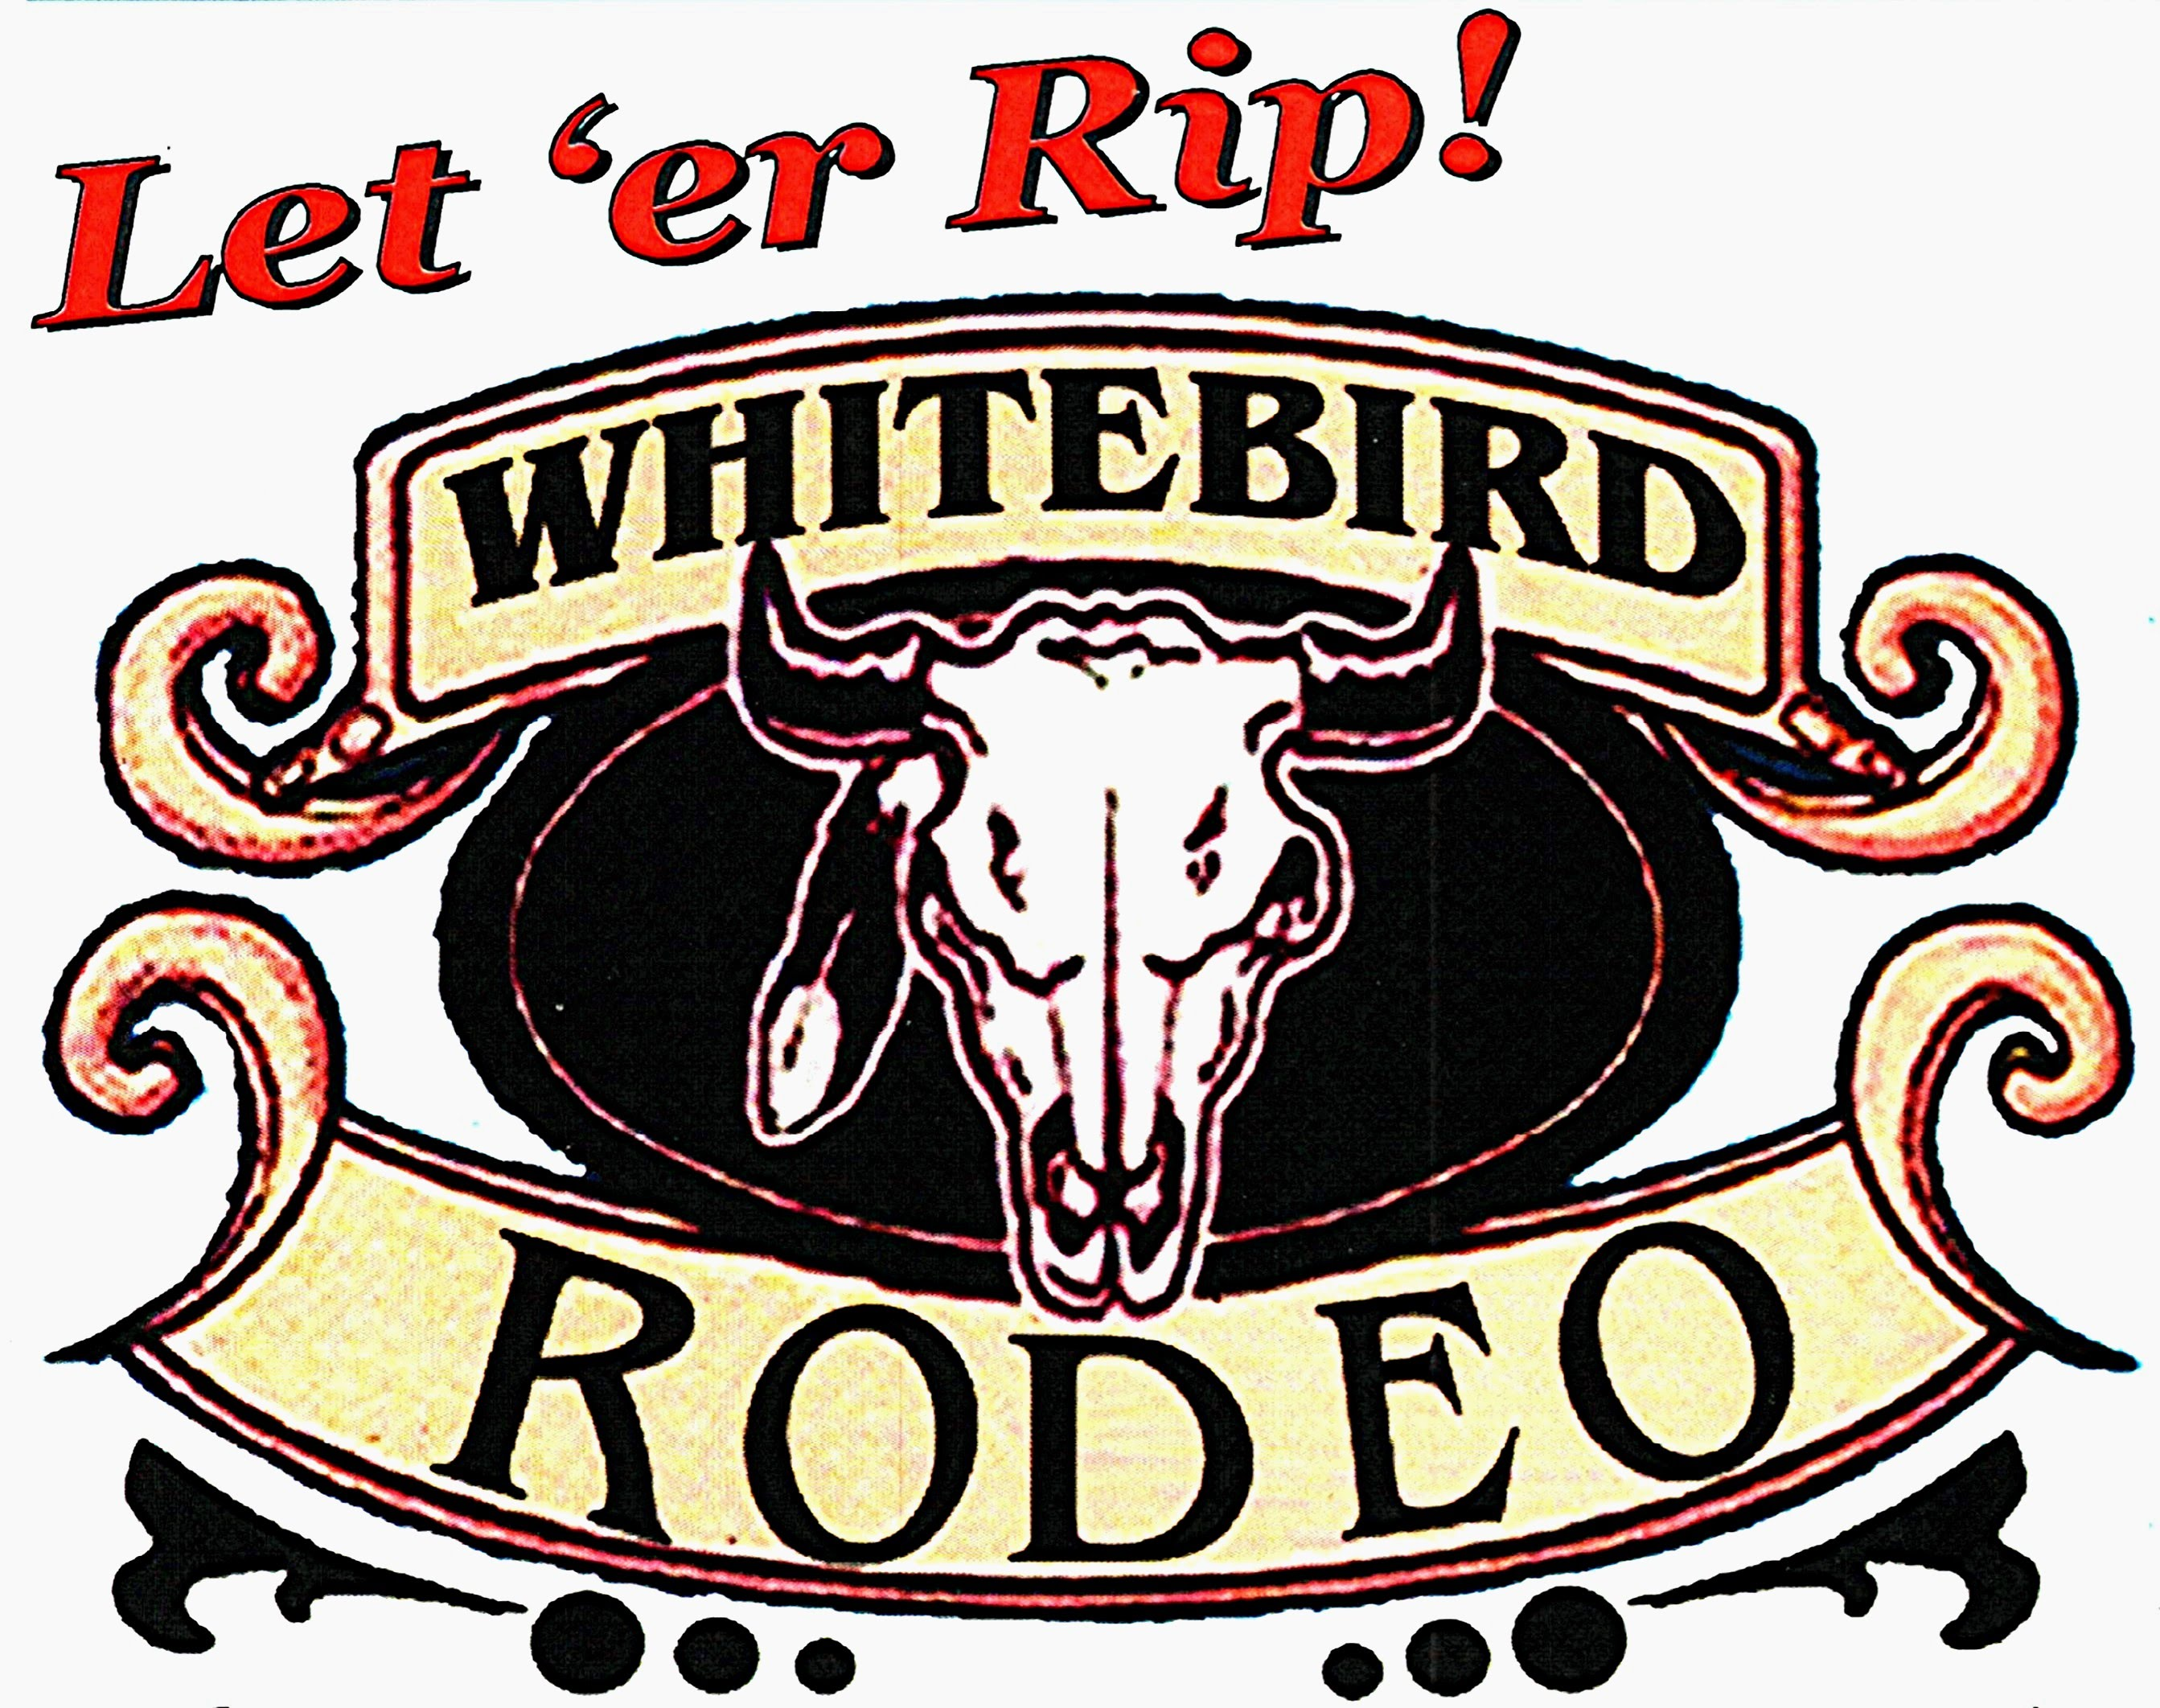 Royalty Whitebird Rodeo